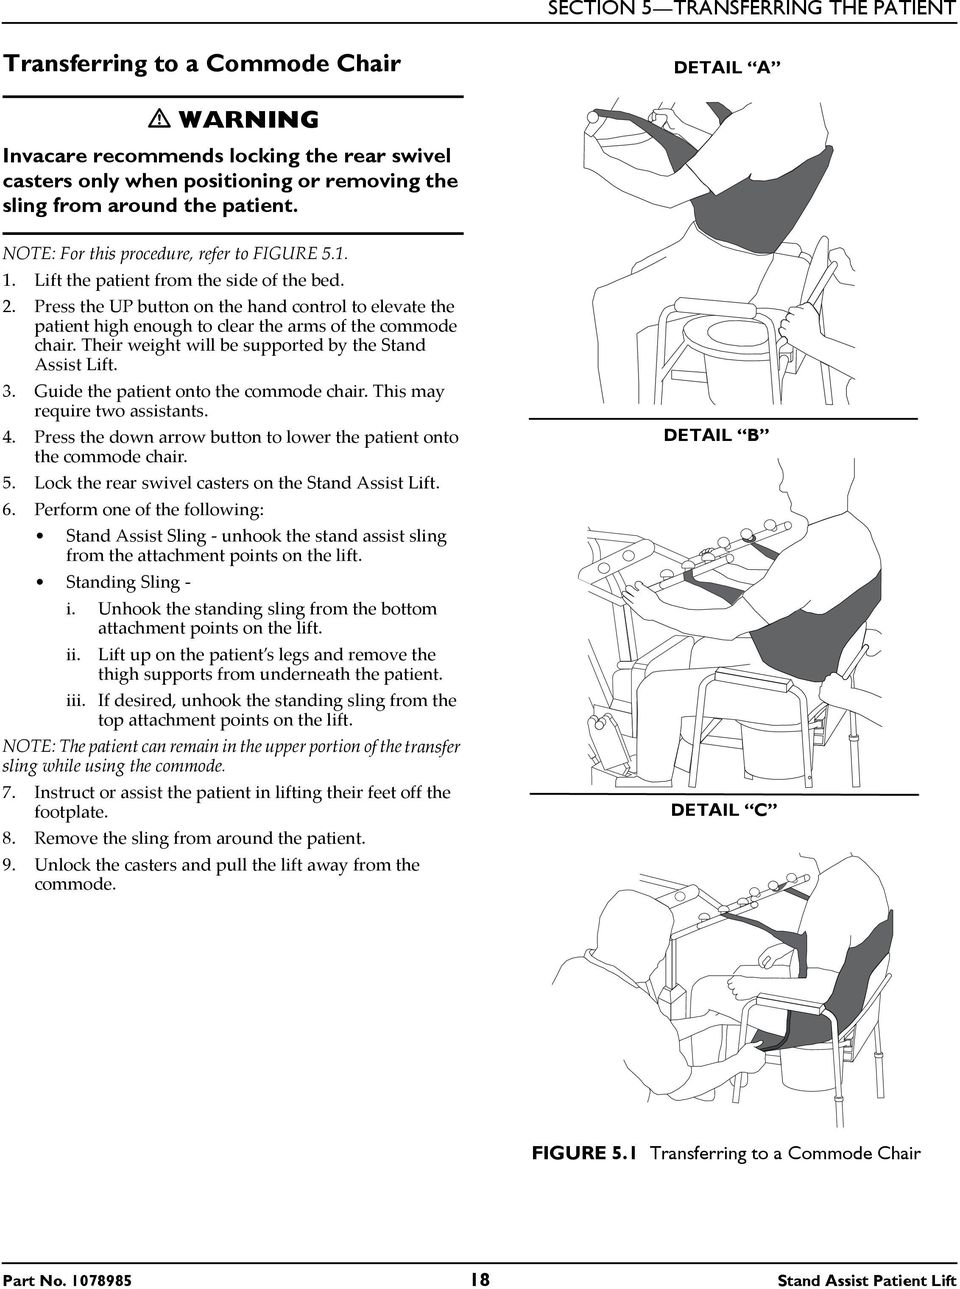 Press the UP button on the hand control to elevate the patient high enough to clear the arms of the commode chair. Their weight will be supported by the Stand Assist Lift. 3.